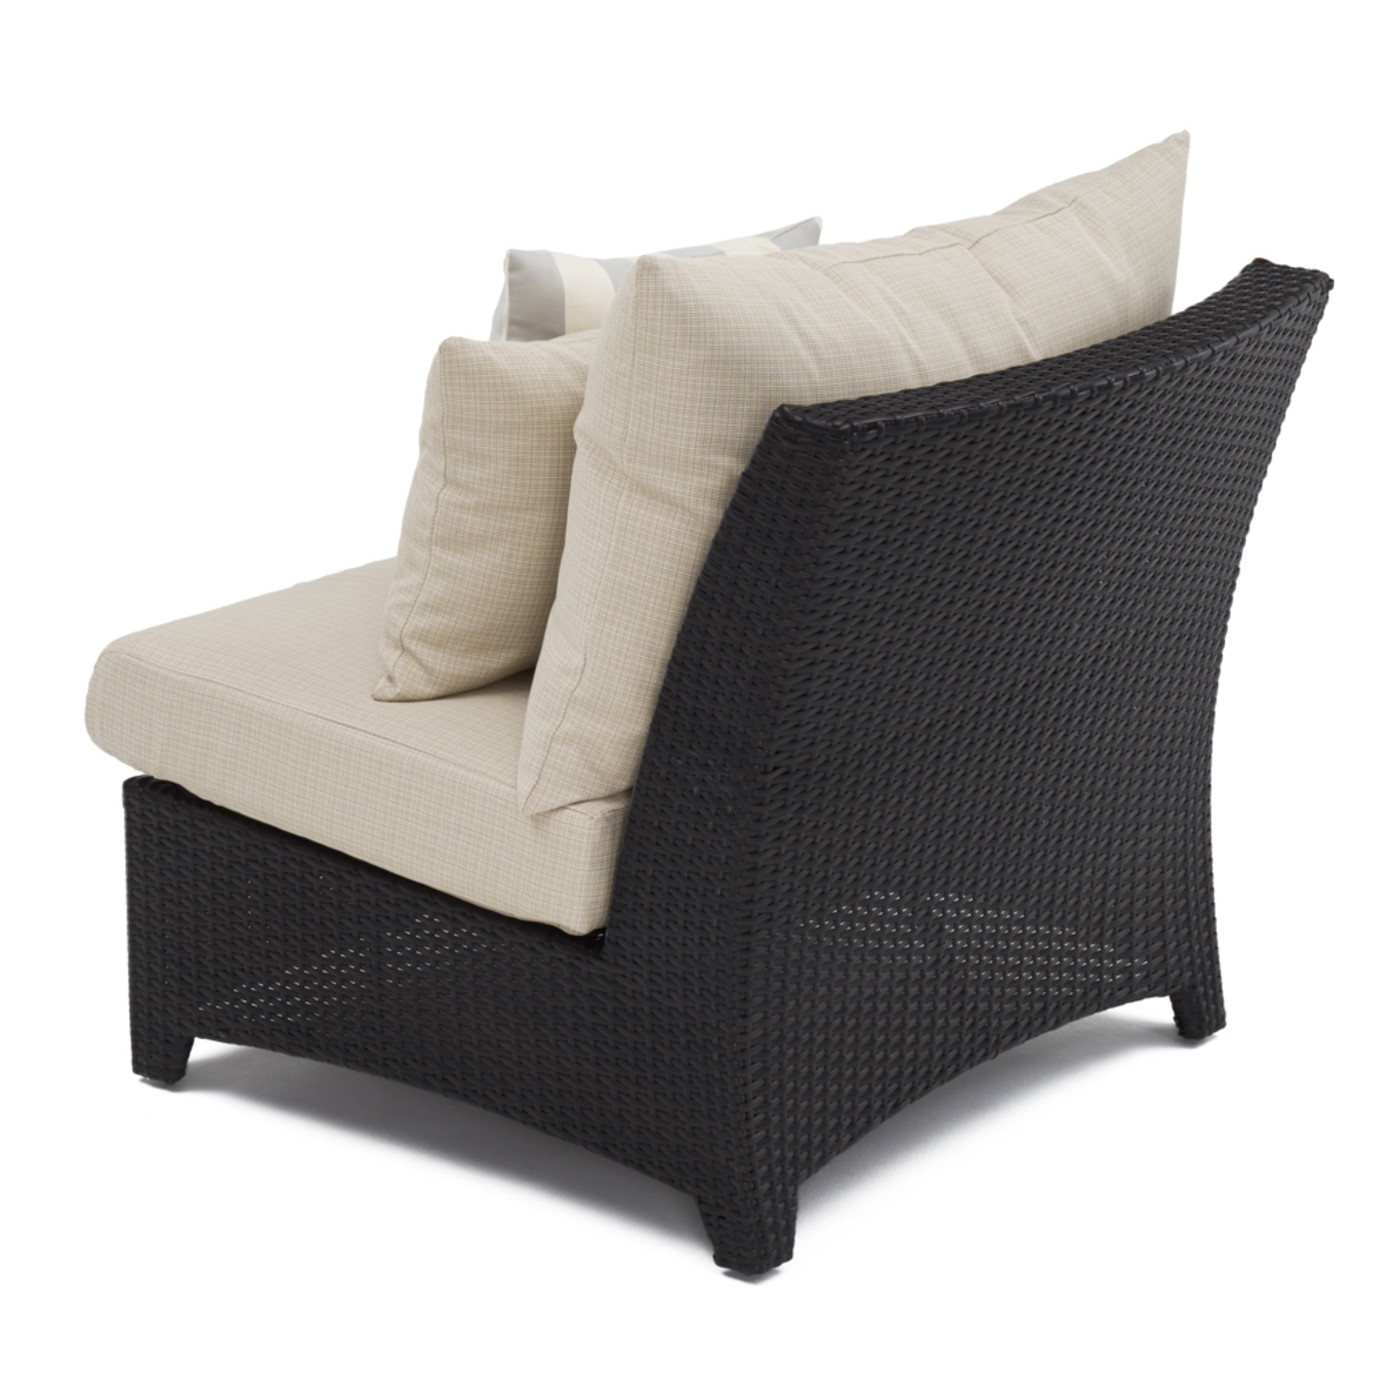 Deco™ Armless Chairs - Slate Gray